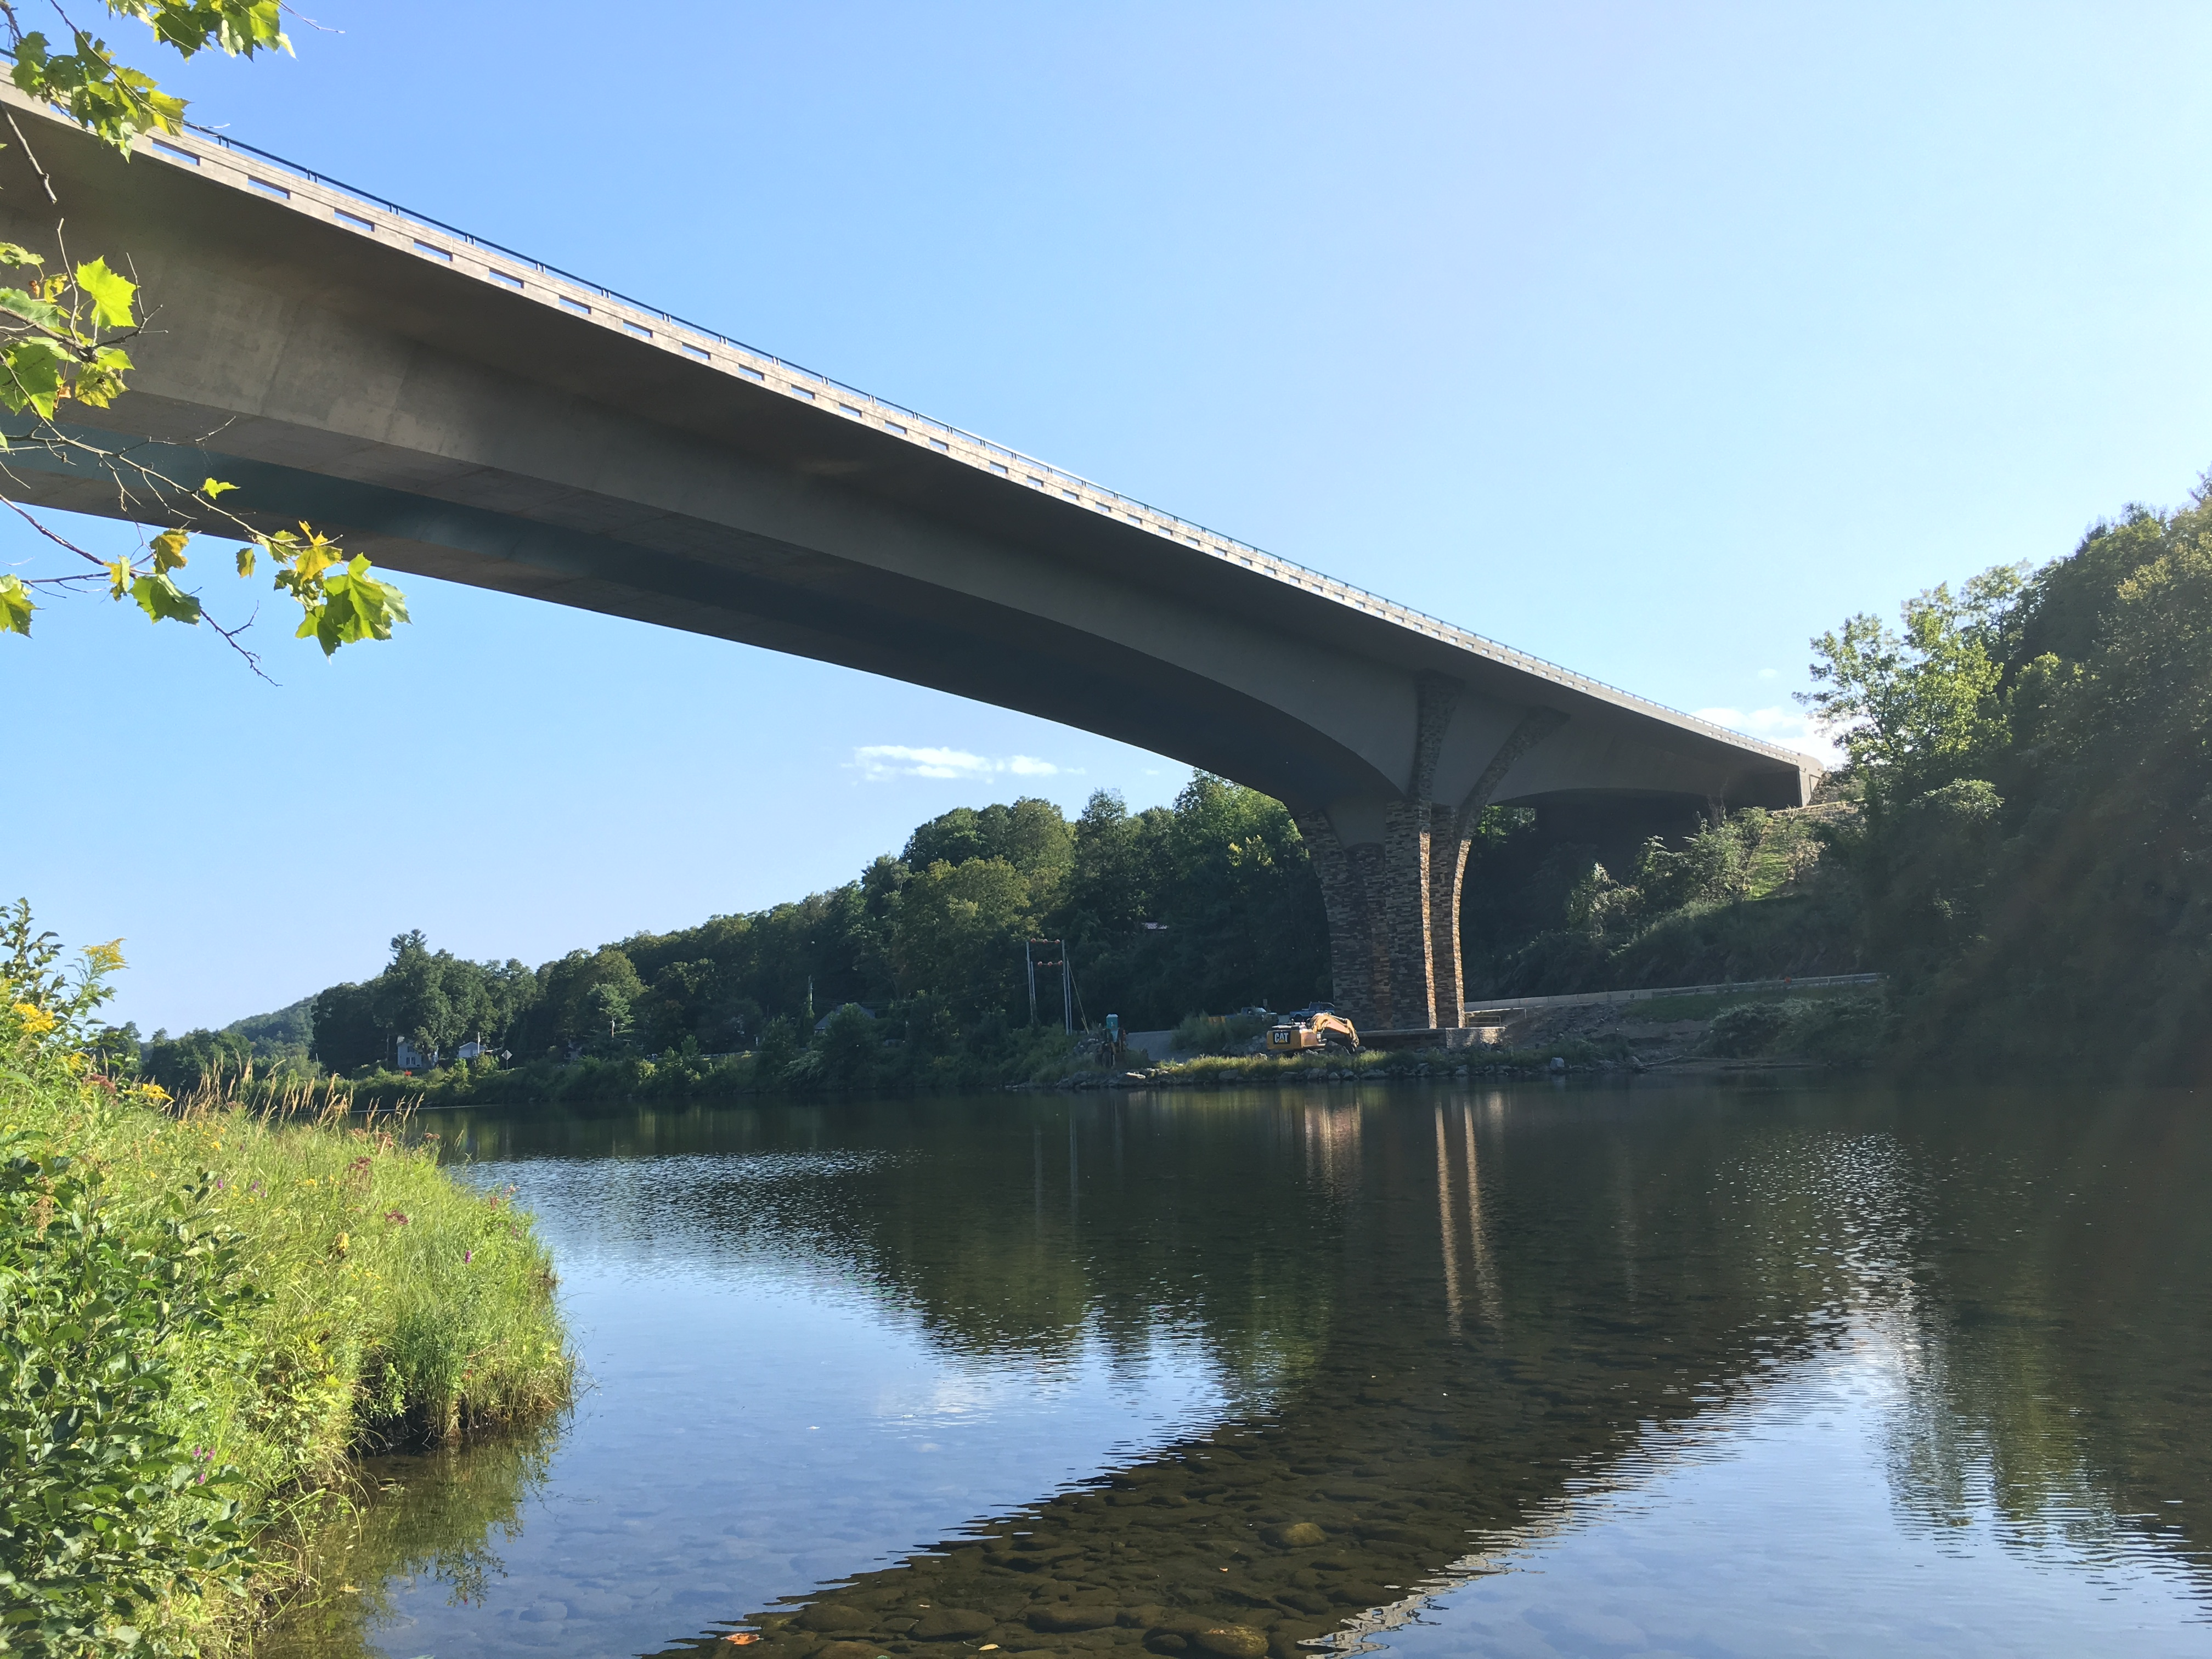 Brattleboro Bridge Header Image (14)